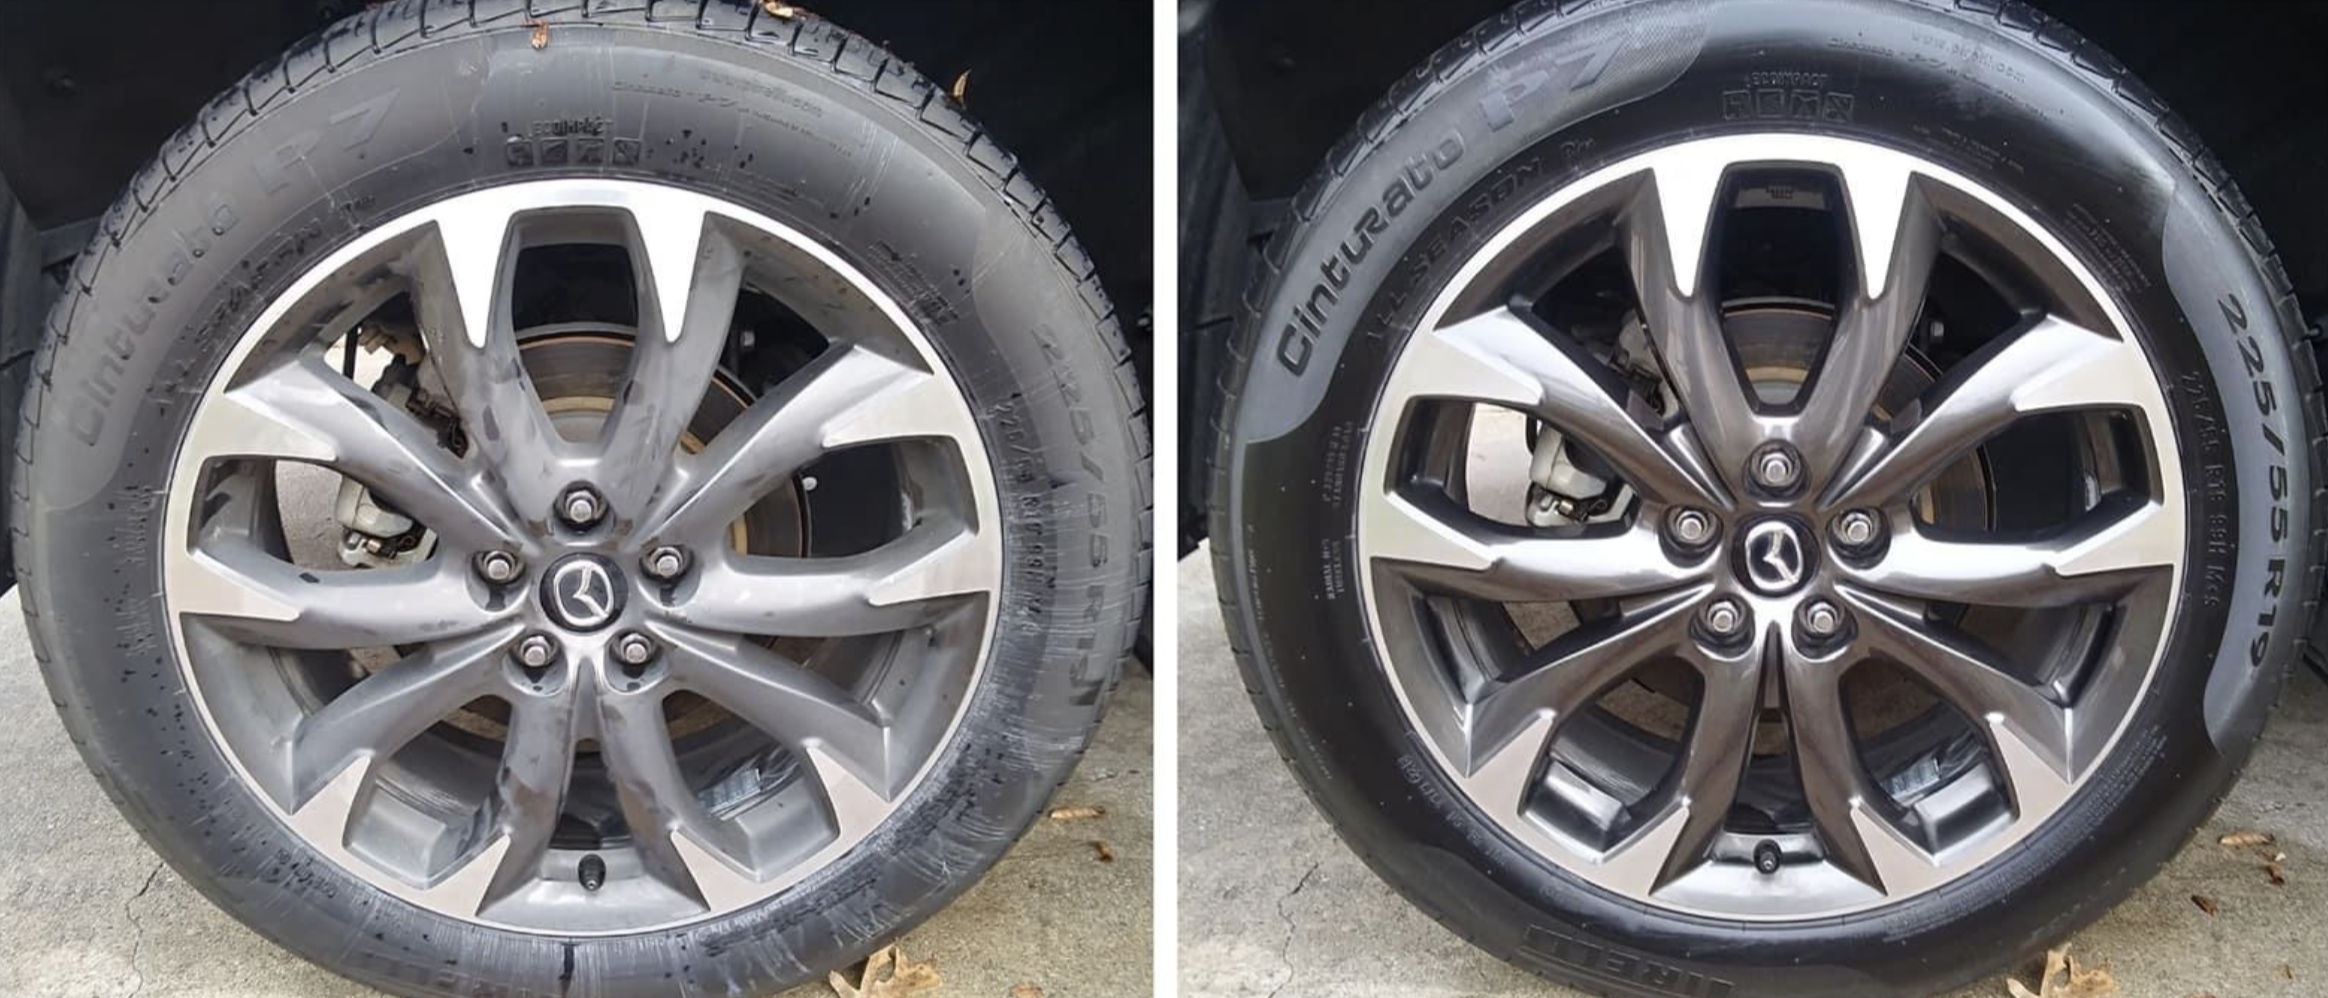 on the left, a reviewer's tires looking dirty, and on the right, the same tires now looking clean